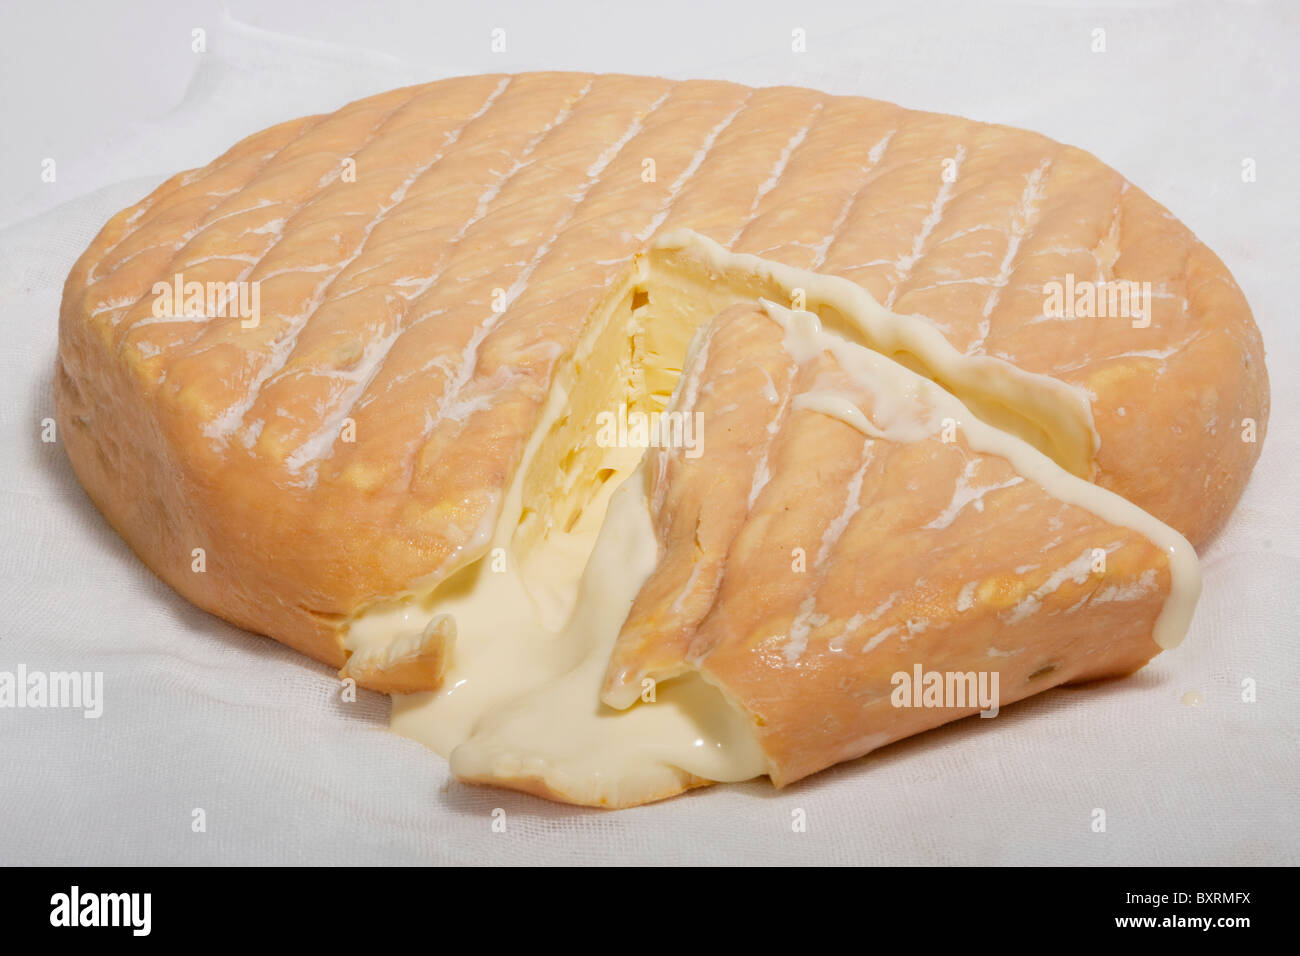 Australian Jensen's Red Washed Rind cow's milk cheese - Stock Image